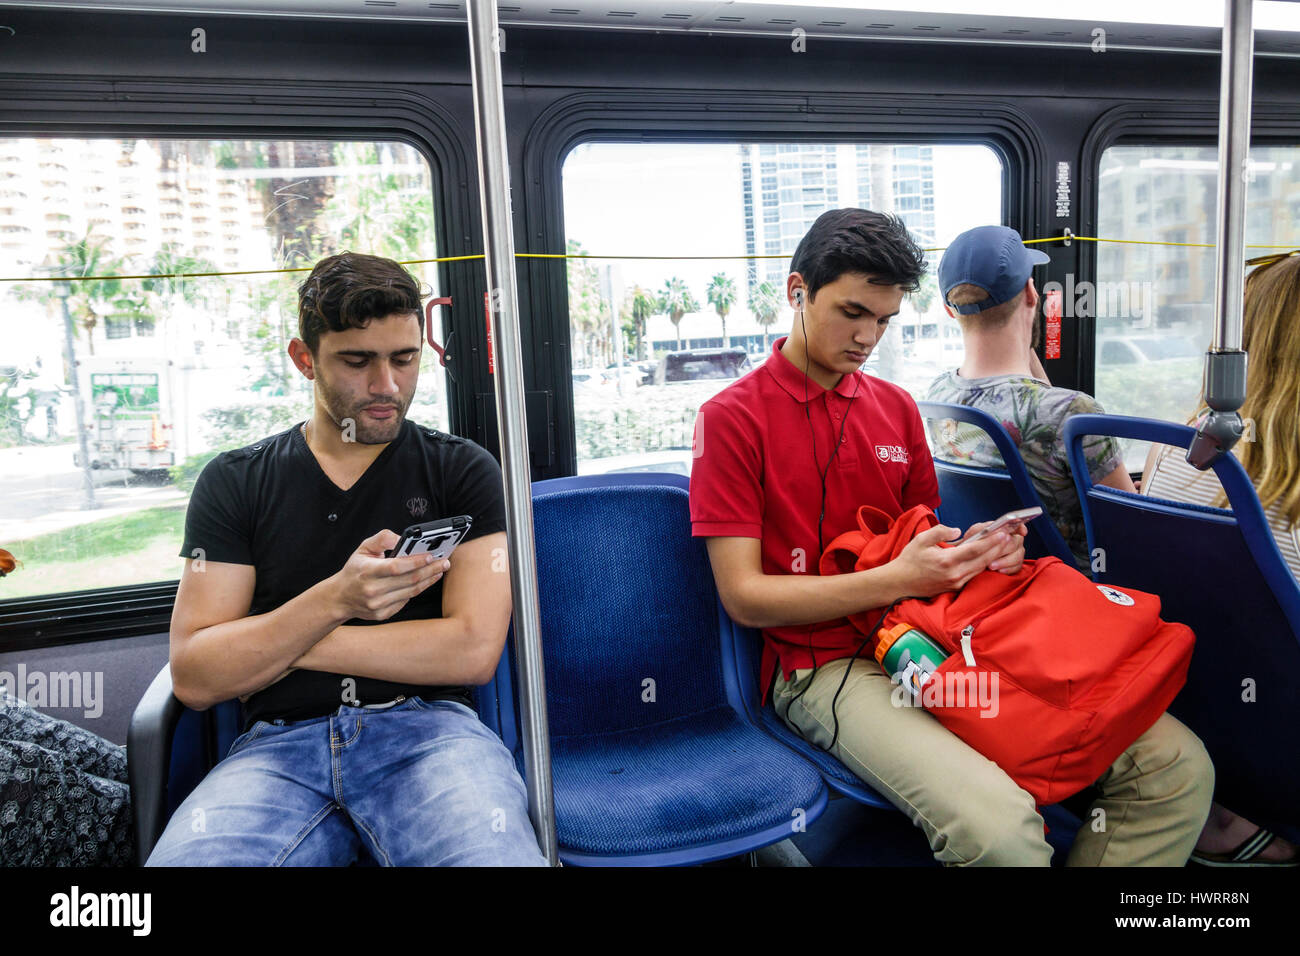 fe1c2d42470 Miami Beach Florida South Beach Local public transportation bus circulator  man boy teen young adult sitting